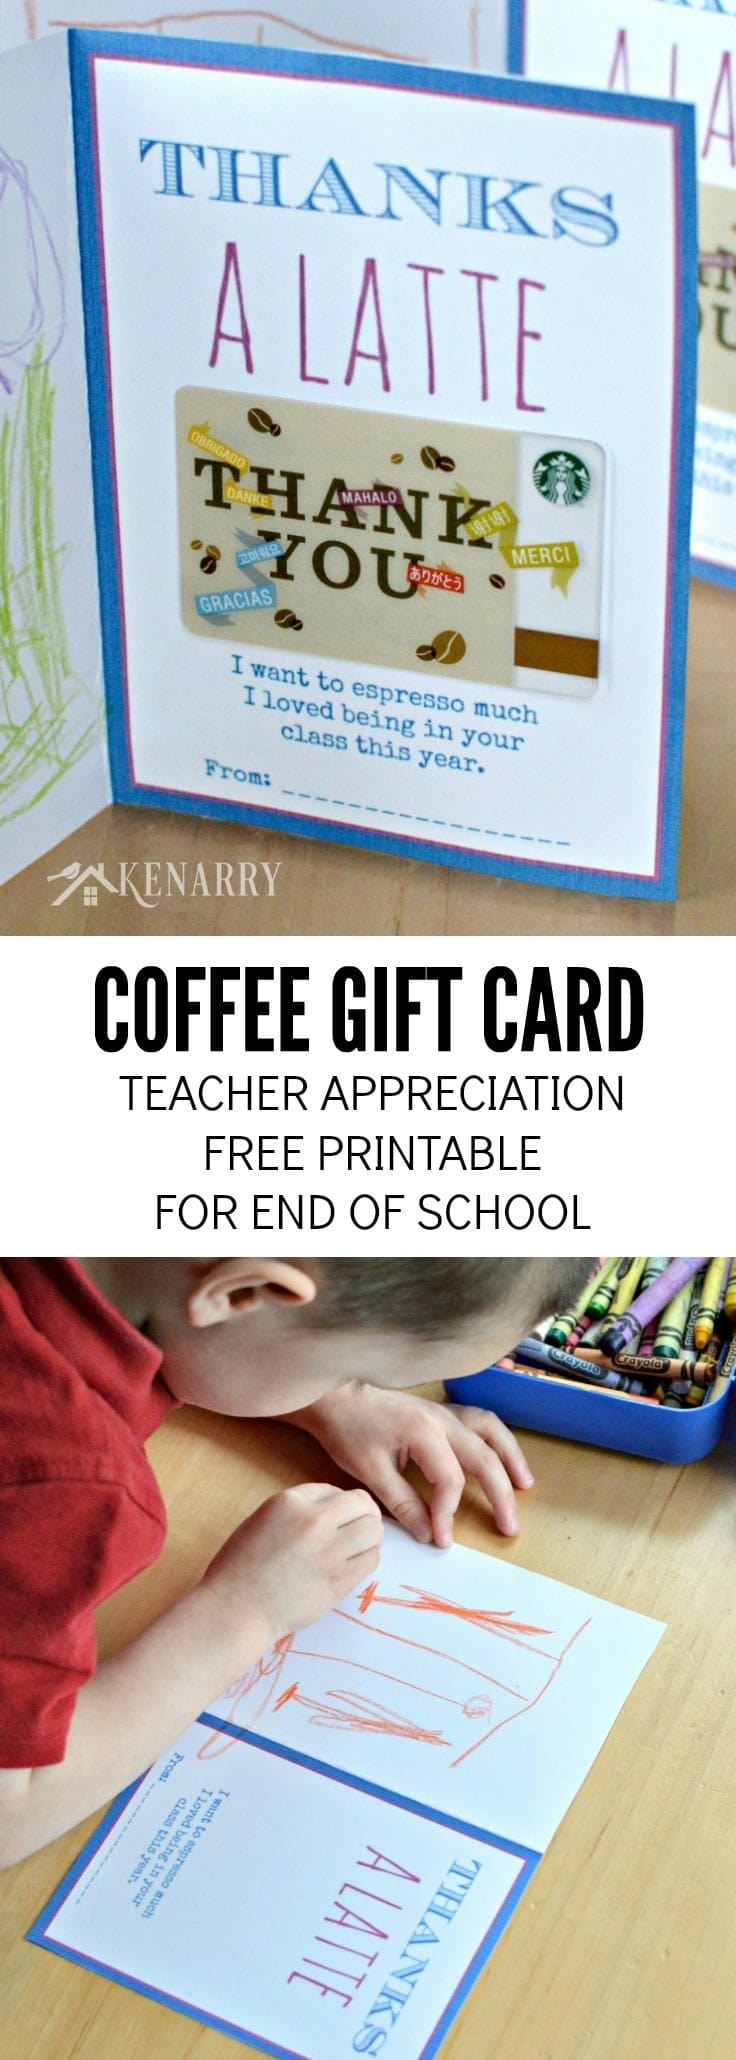 Free Printable Teacher Appreciation Card for the End of School. Attach a coffee gift card and have your child decorate to say